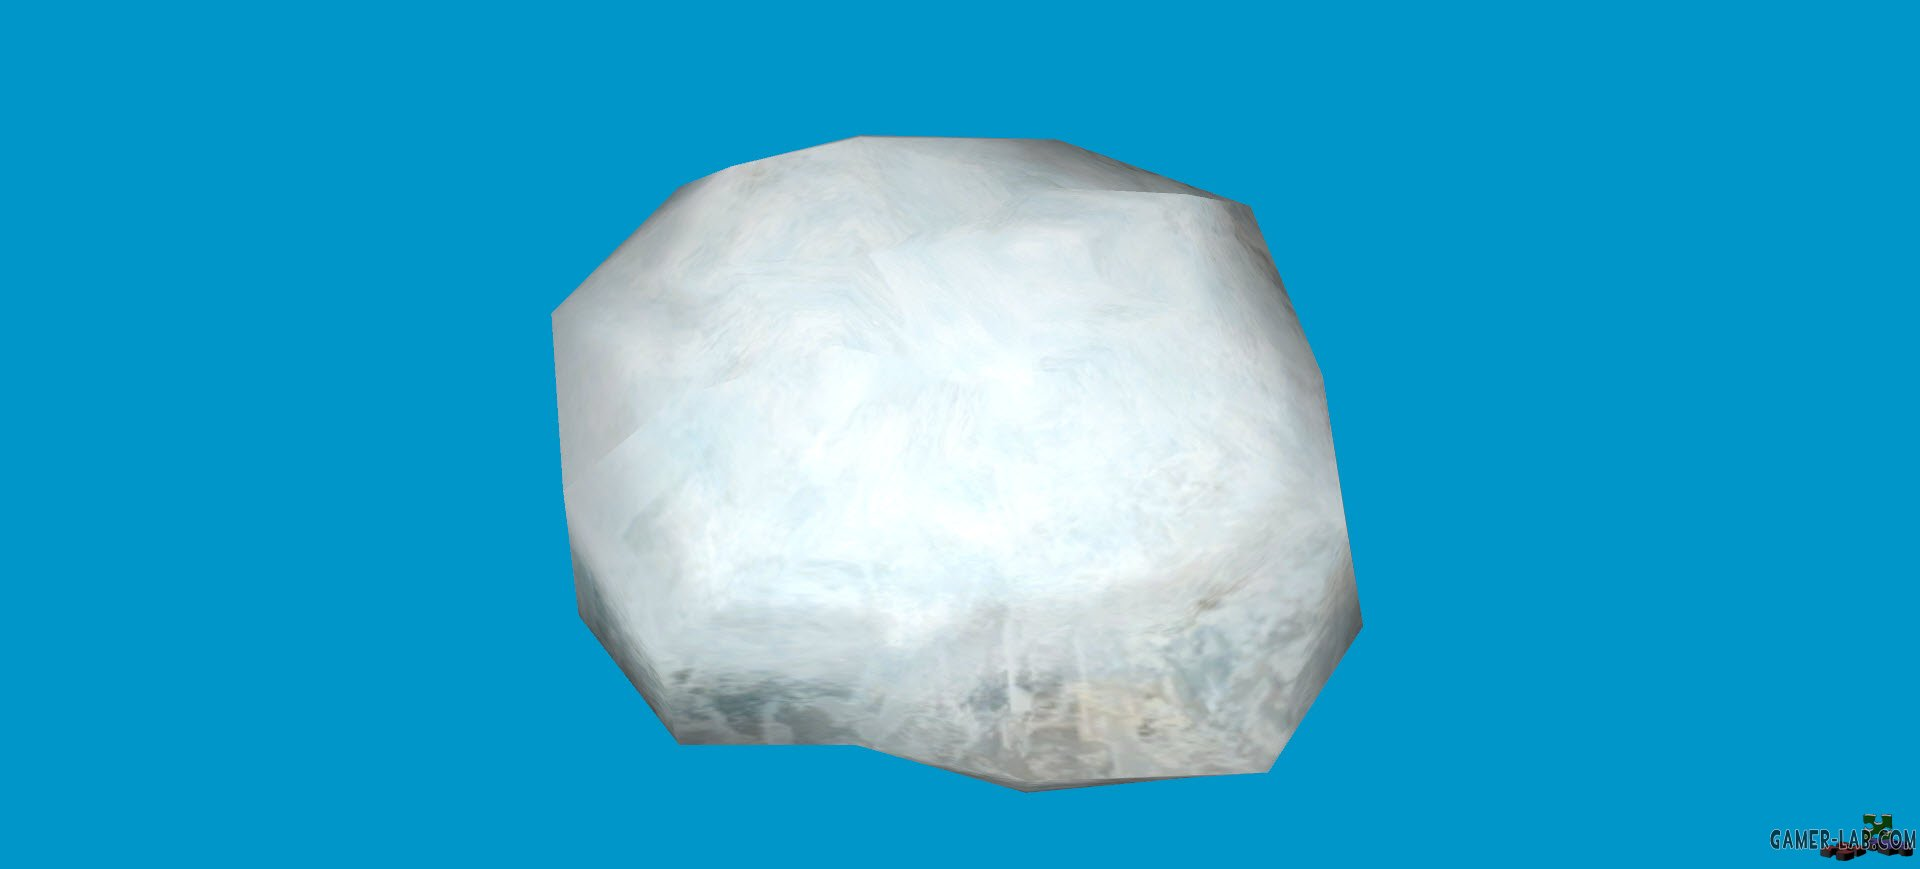 prop boulder little 1